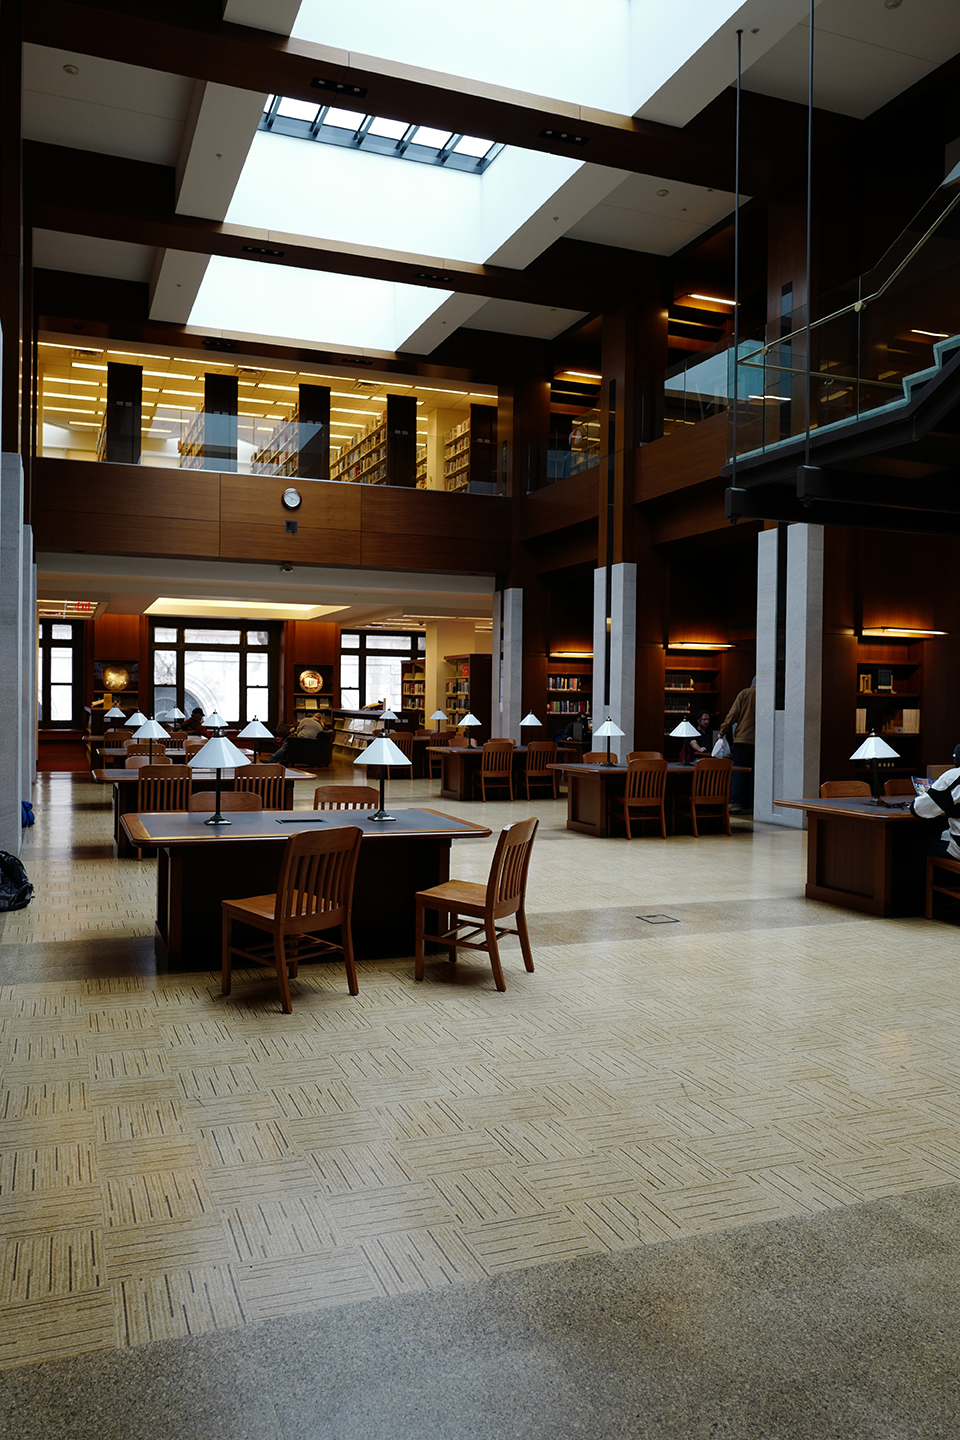 The interior of the Kansas City Public Library